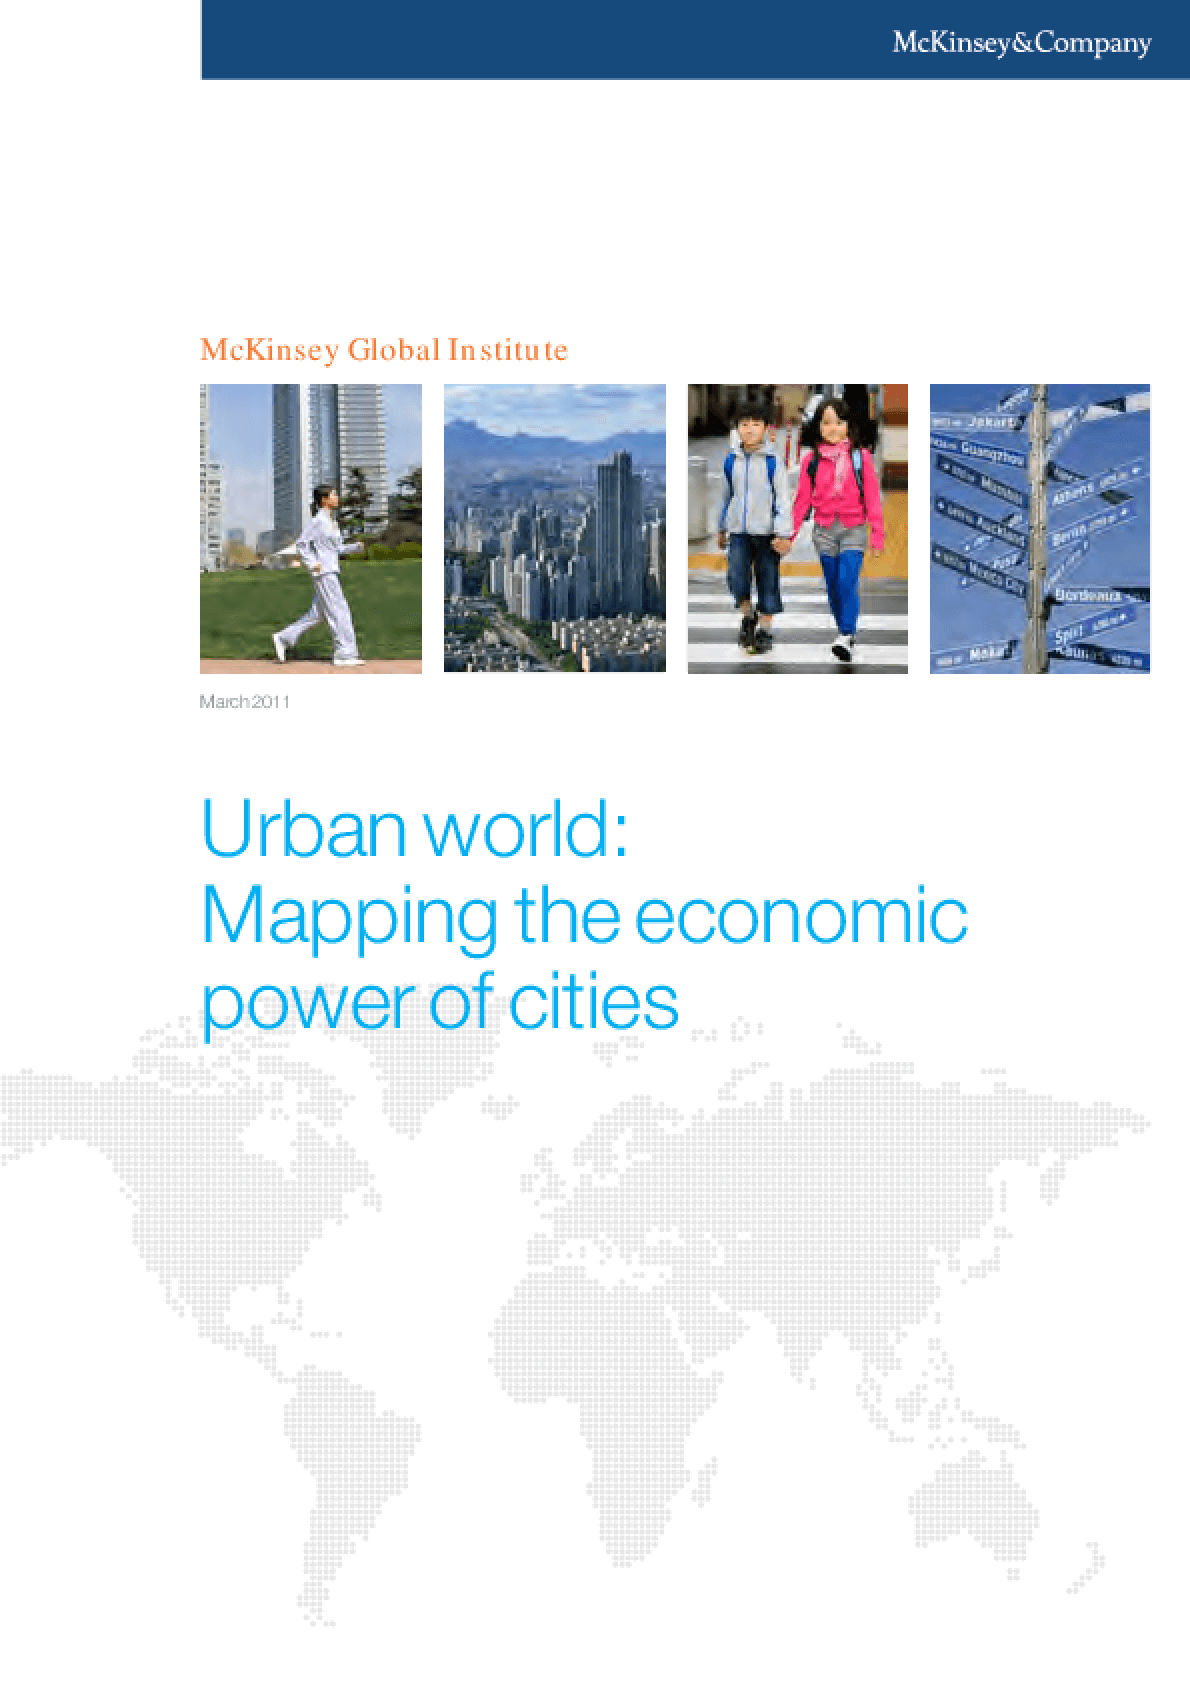 Urban world: Mapping the economic power of cities